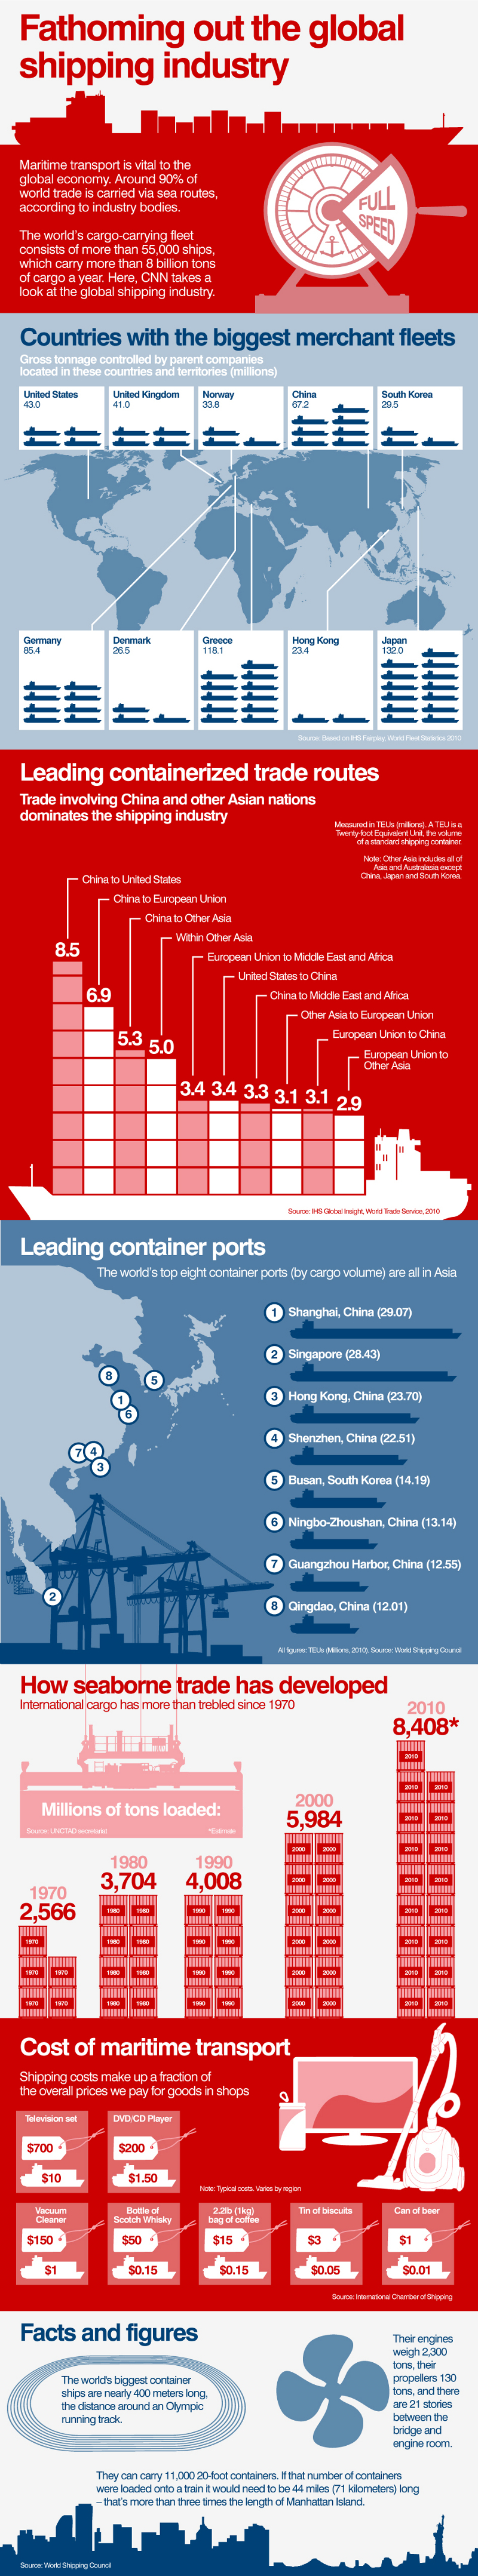 Global Shipping Industry Statistics